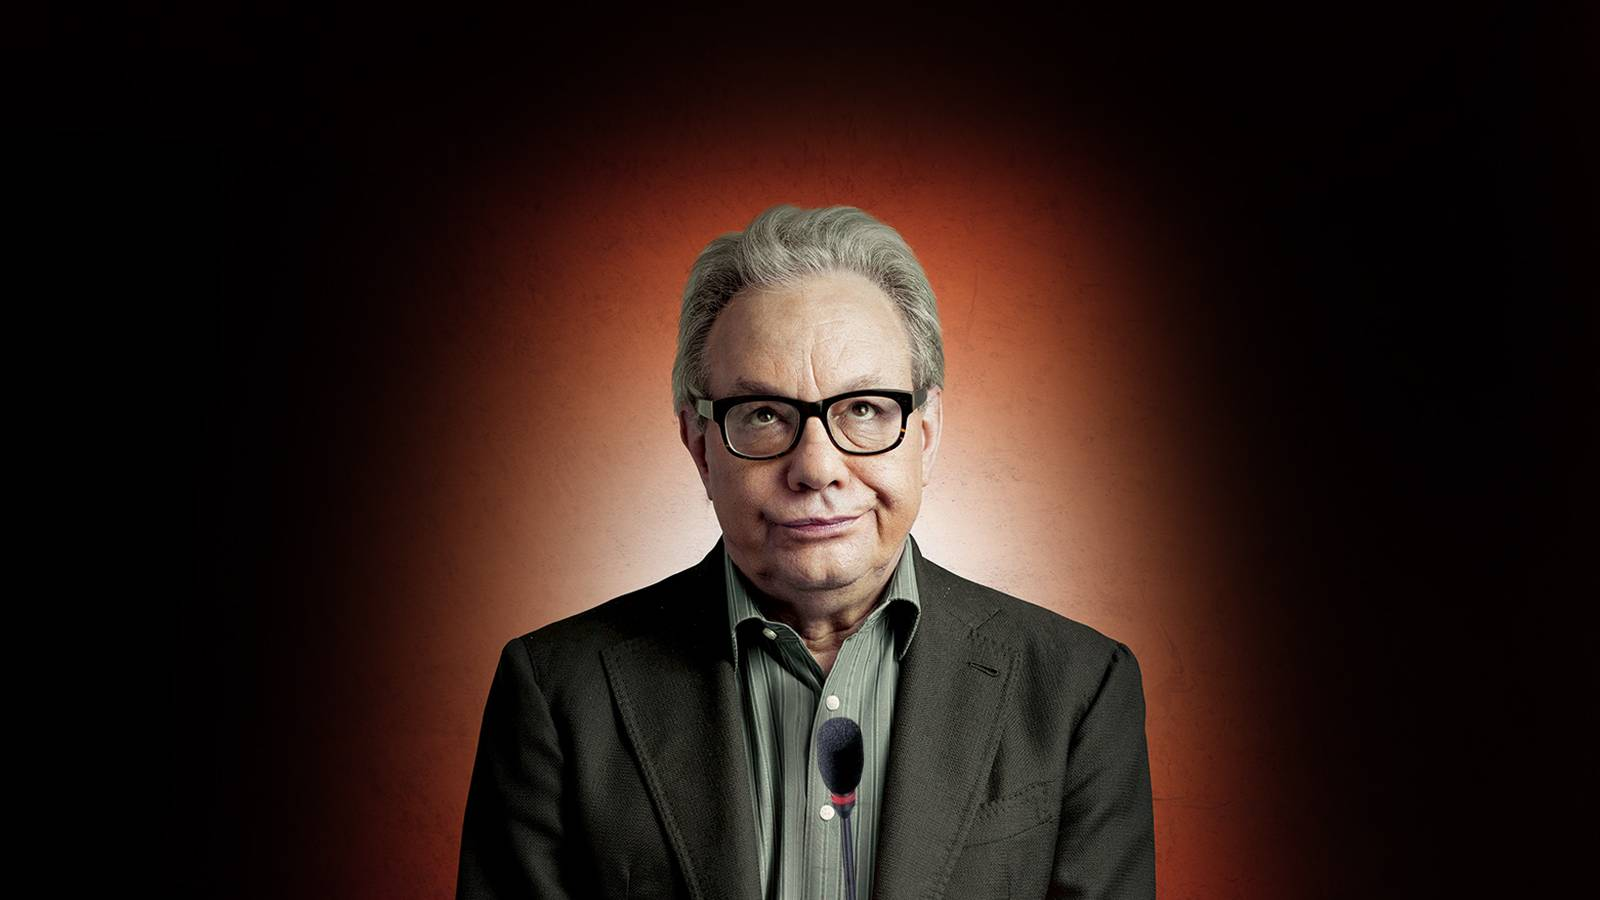 Lewis Black (Rescheduled from 5/2)